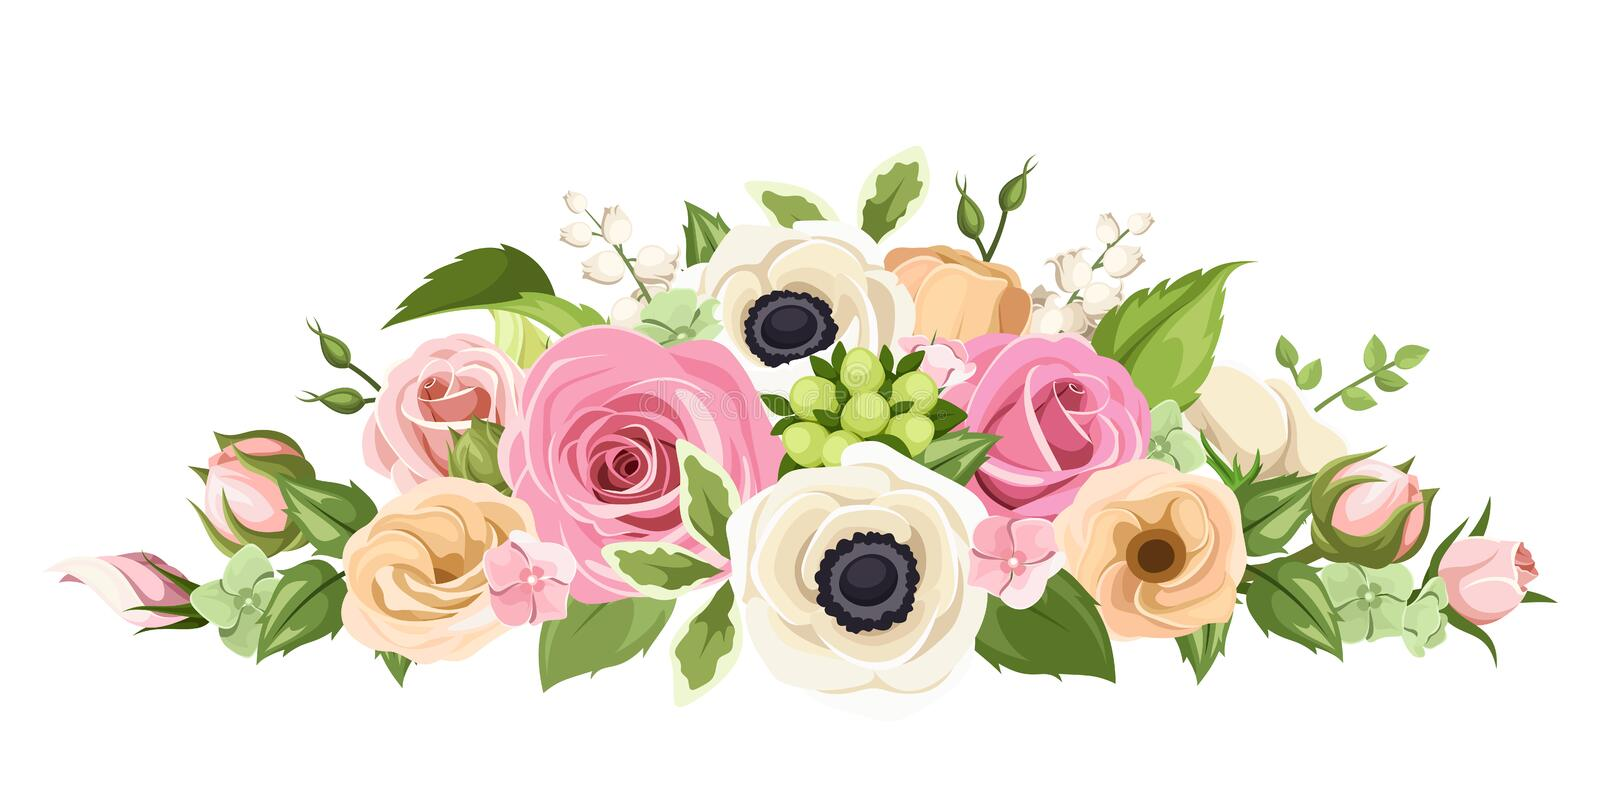 Pink, orange and white roses, lisianthuses, anemone flowers and green leaves. Vector illustration. royalty free illustration